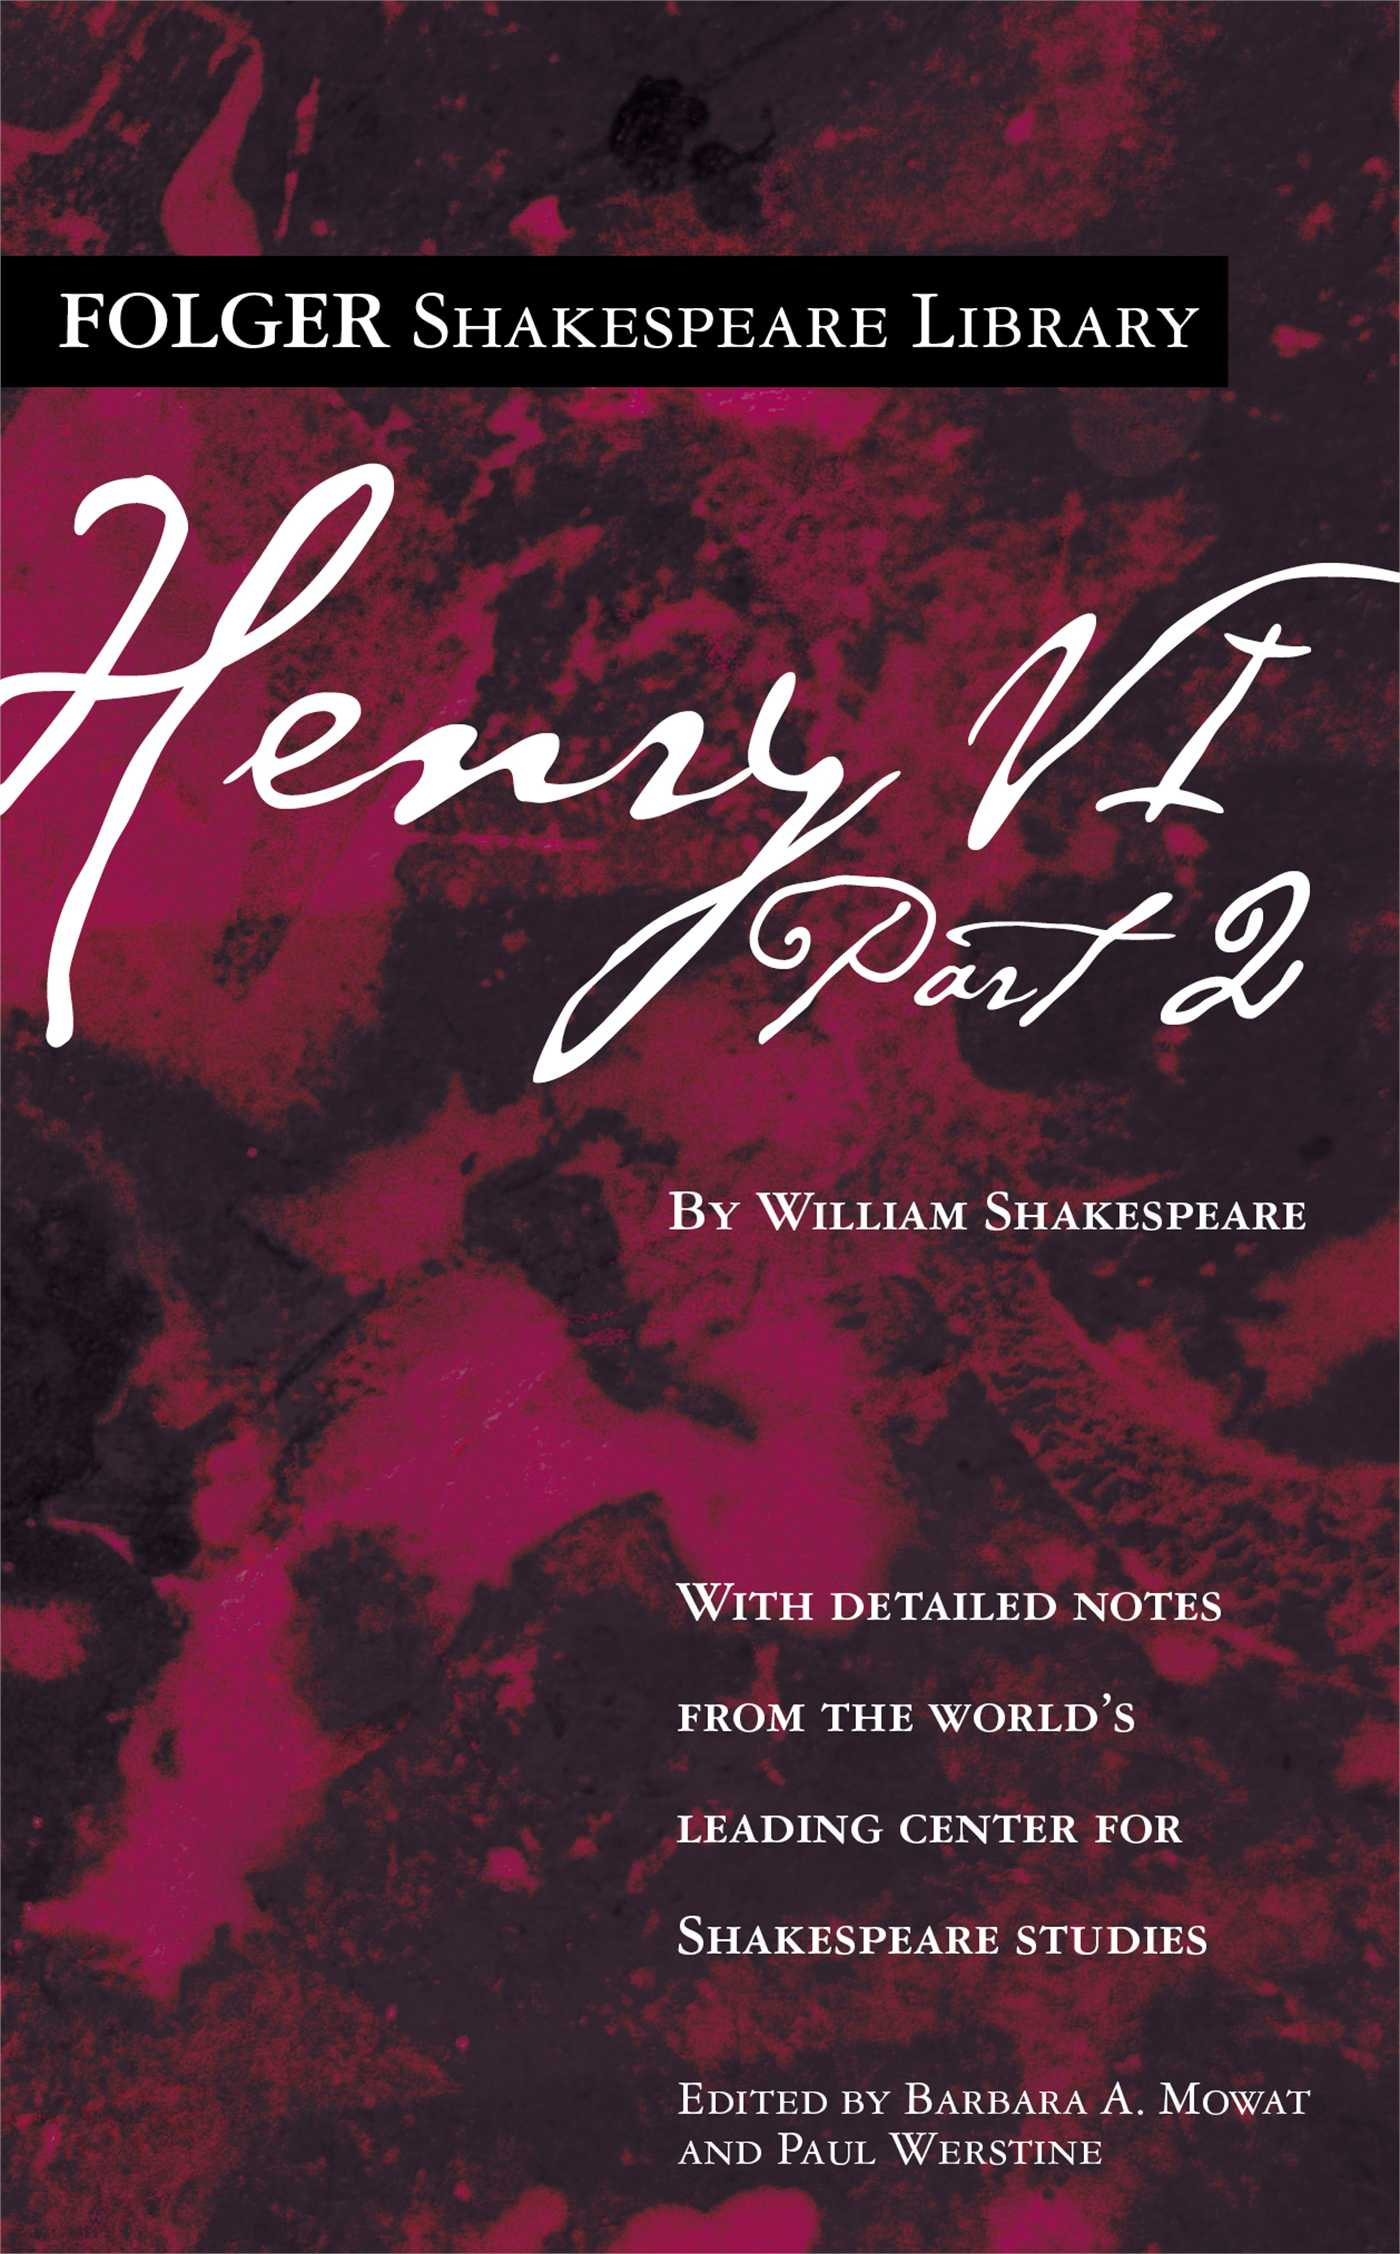 william shakespeares portrayal of richard ii and henry vi William shakespeare intra  these plays, henry vi, parts i, ii, and  they cover the span immediately before that of the henry vi plays richard ii is a study.